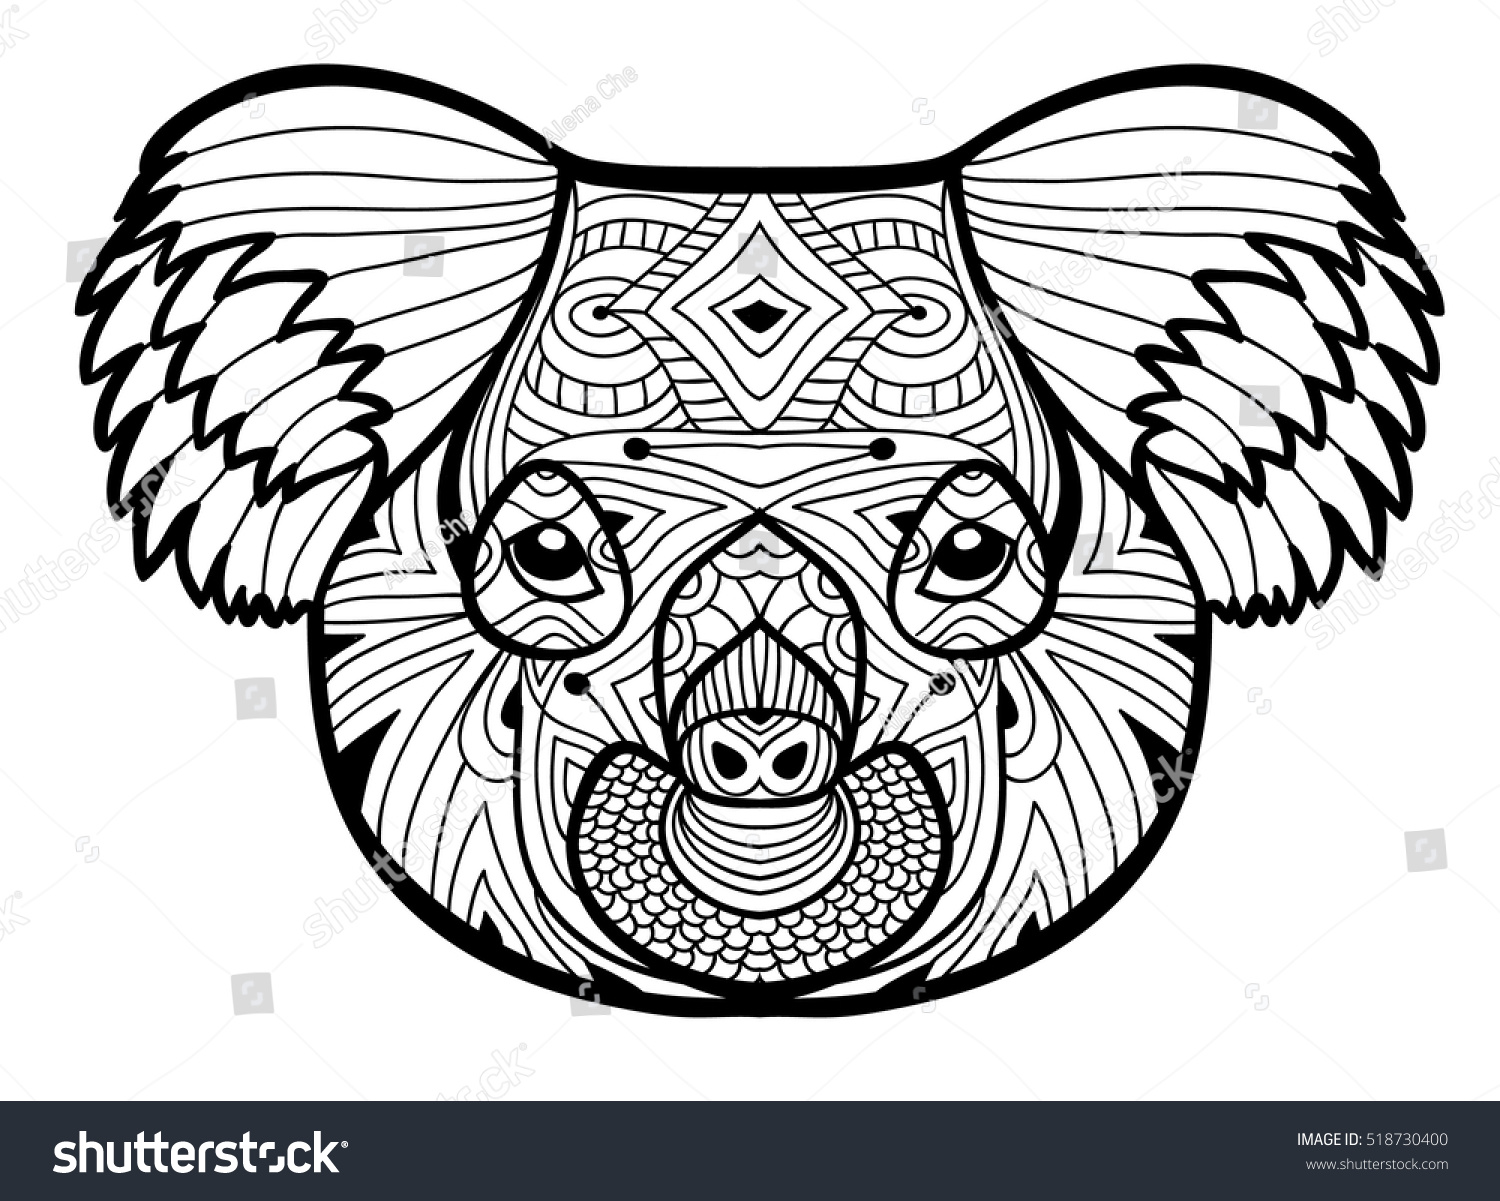 Animal Concept Line Design The Head Of A Koala Monochrome Ink